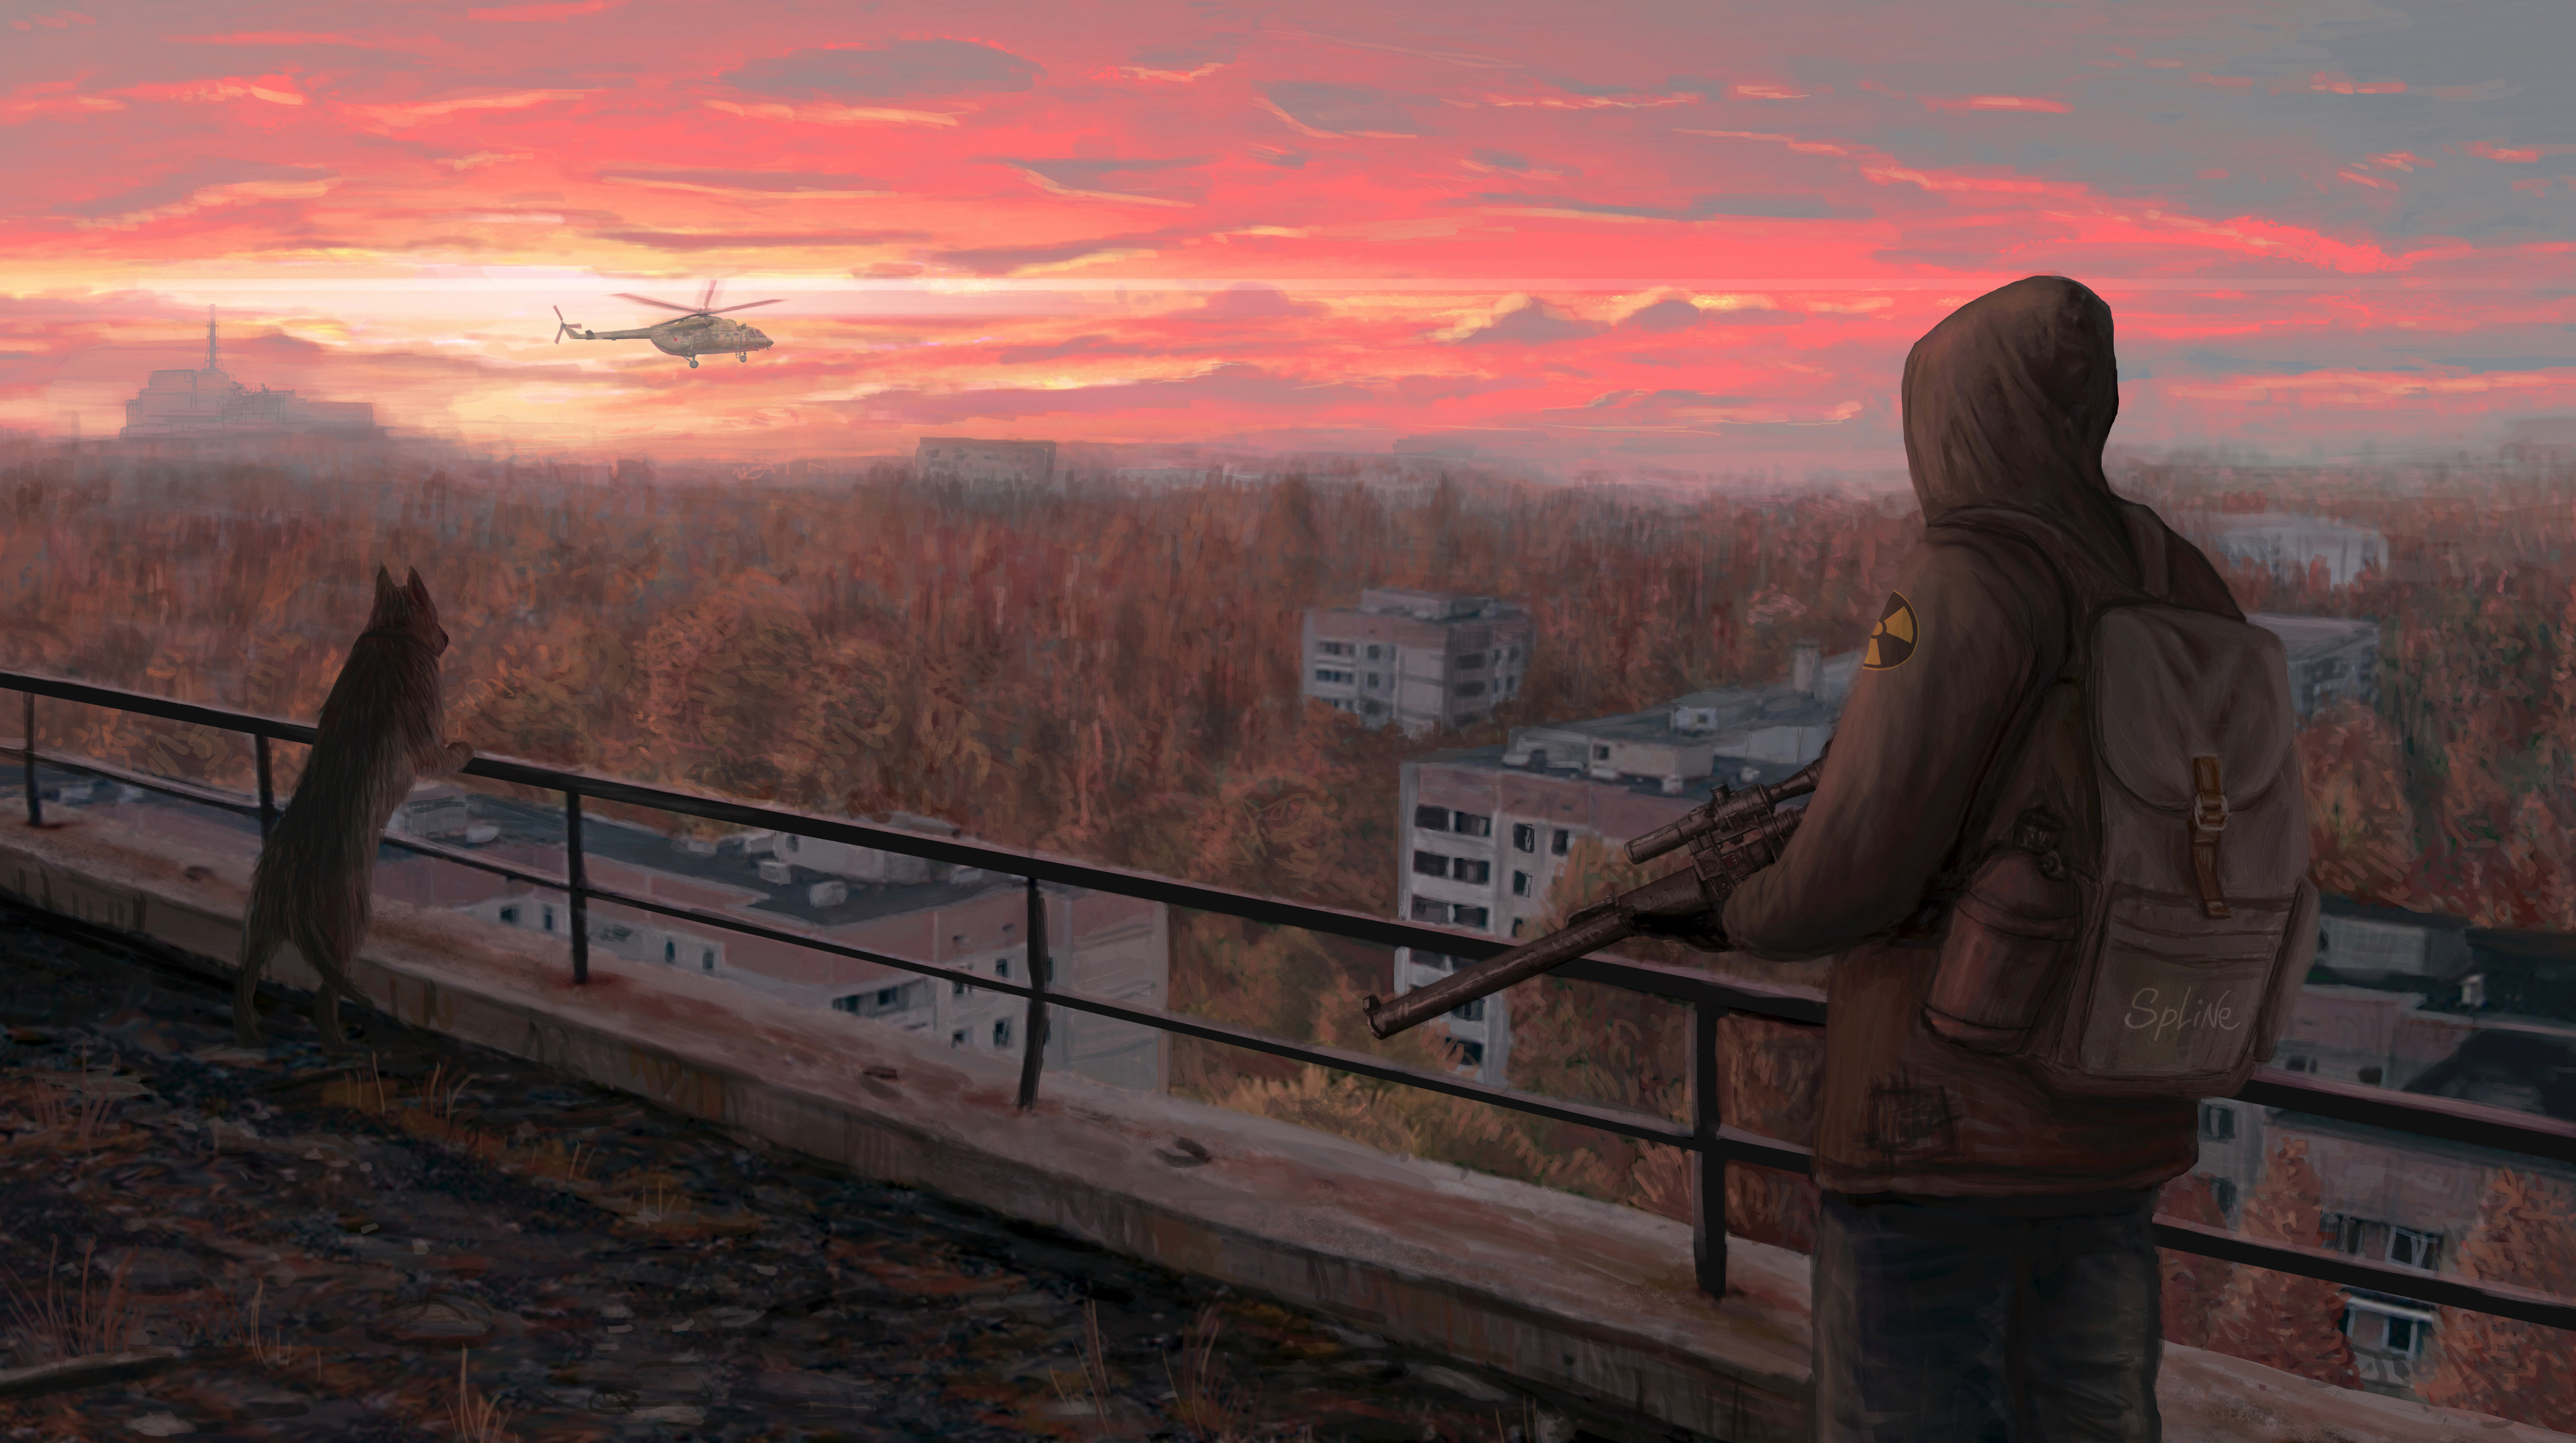 Stalker 2 Time To Go Home Hd Games 4k Wallpapers Images Backgrounds Photos And Pictures Stalker 2 return of old friend